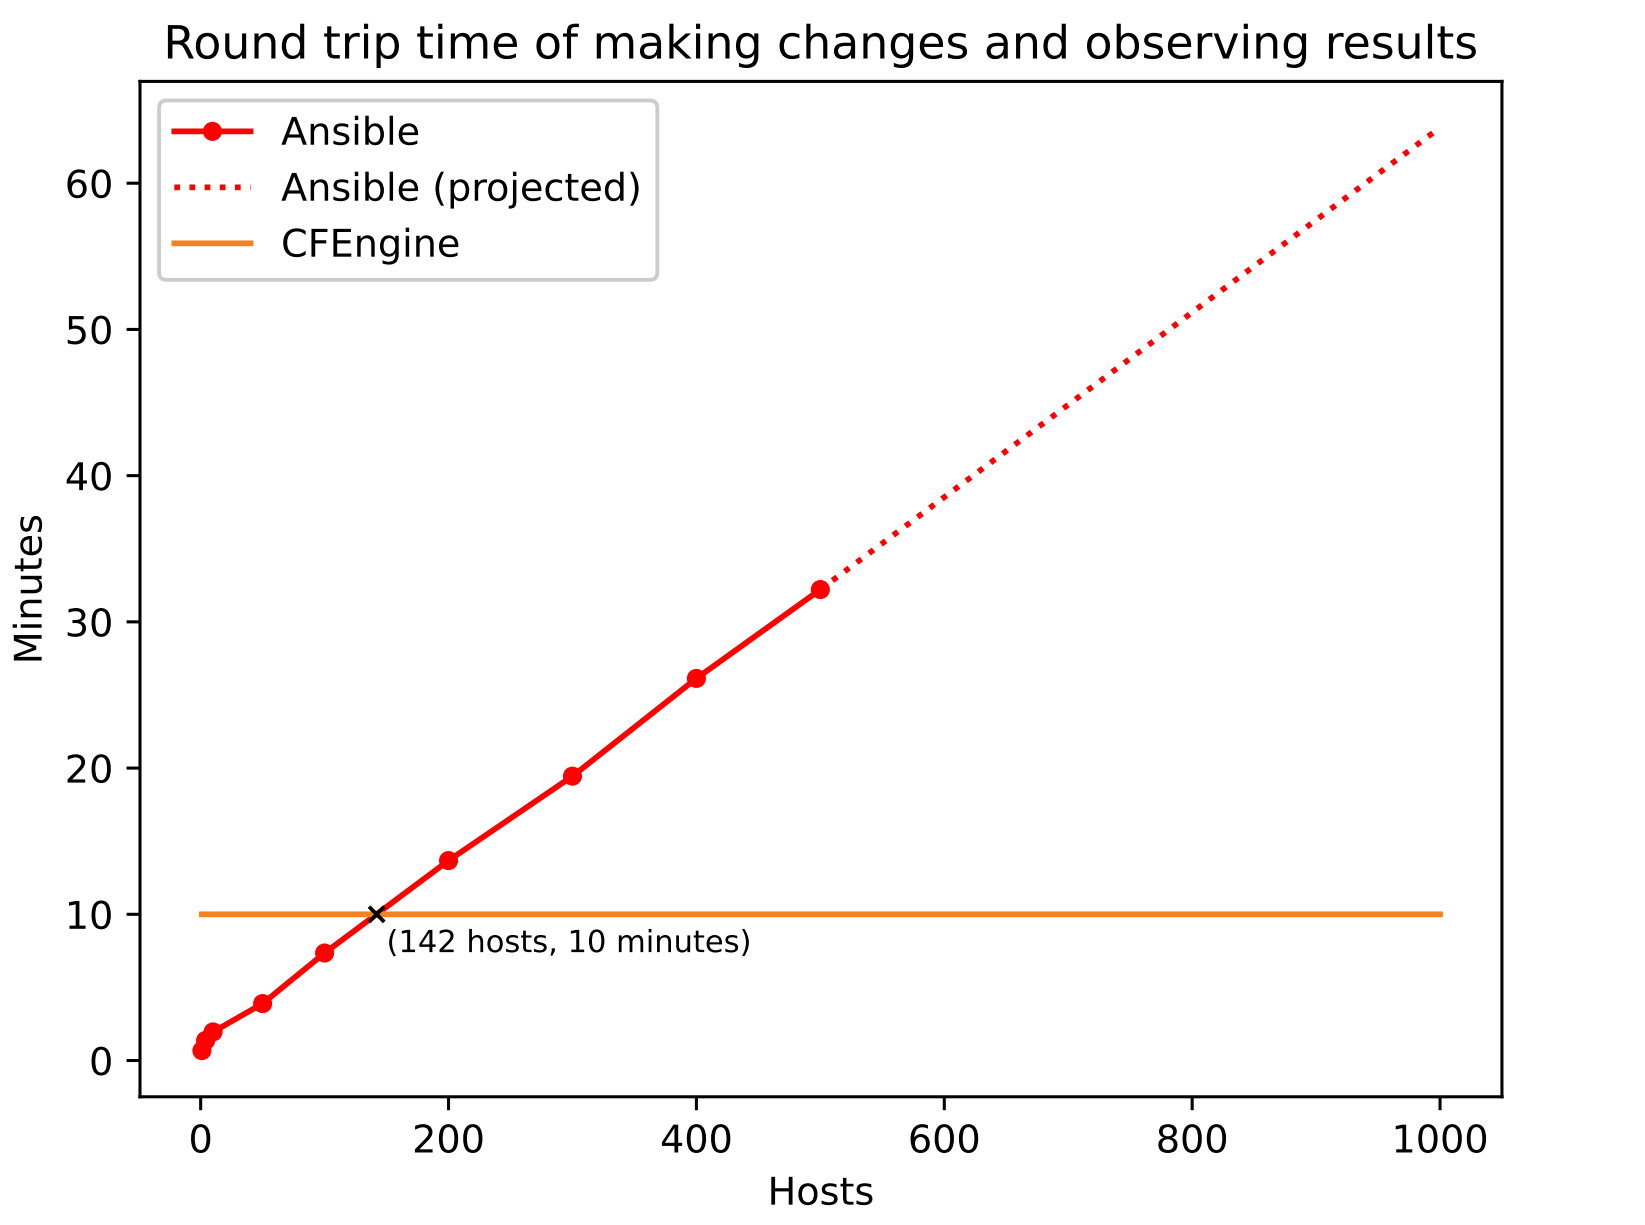 Graph showing round trip time of making changes and observing results. Ansible is increasing linearly as you add more hosts, while CFEngine is constant.